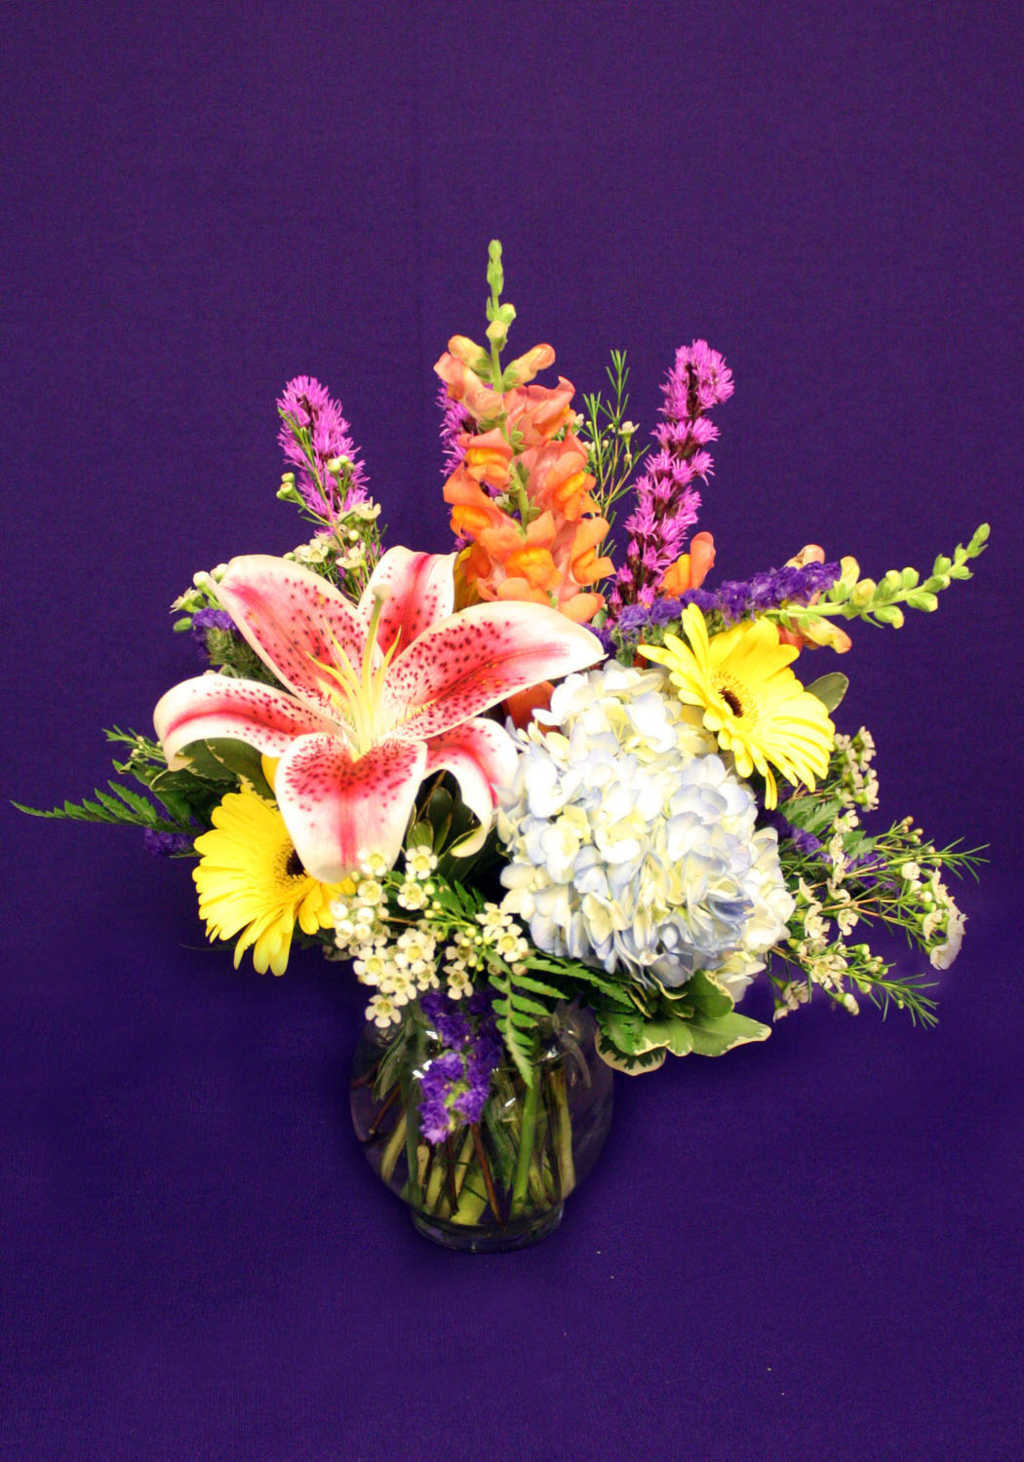 Floral arrangements with lillies, daisies, and delphiniums from Mon General Hospital Gift Shop